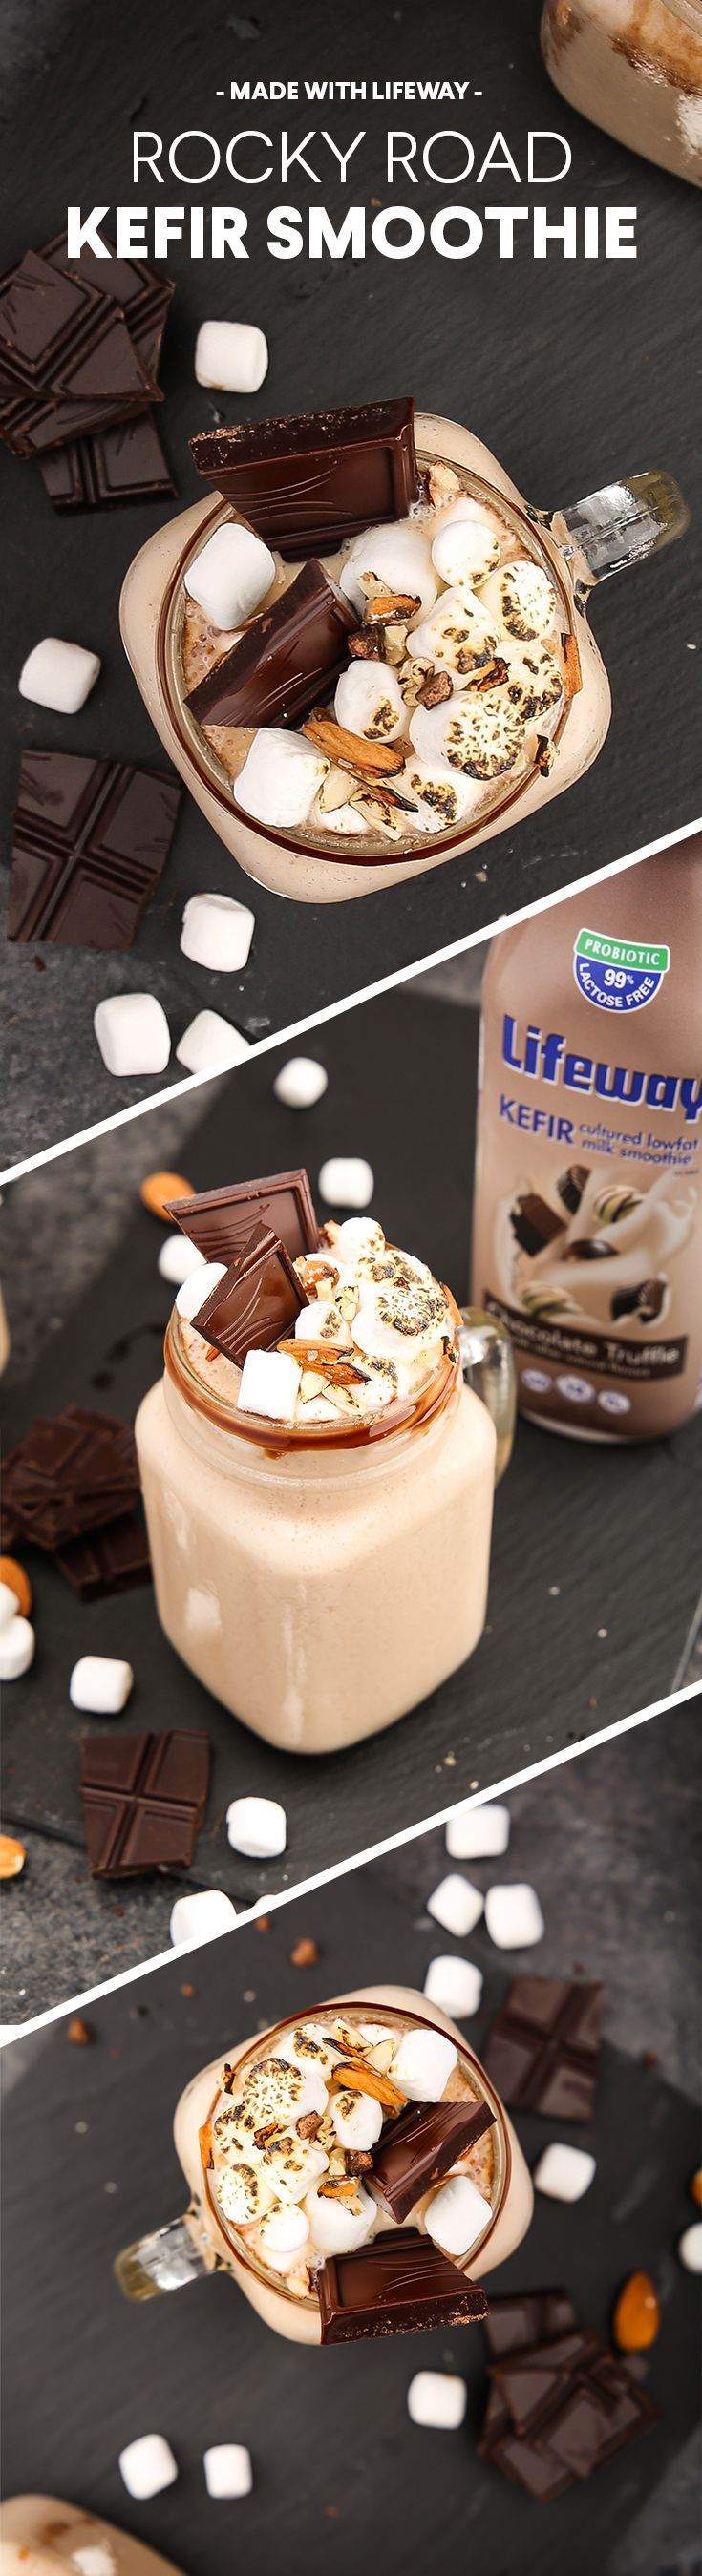 Our Rocky Road Kefir Smoothie tastes just like your favorite ice cream blend, but at a fraction of the calories.